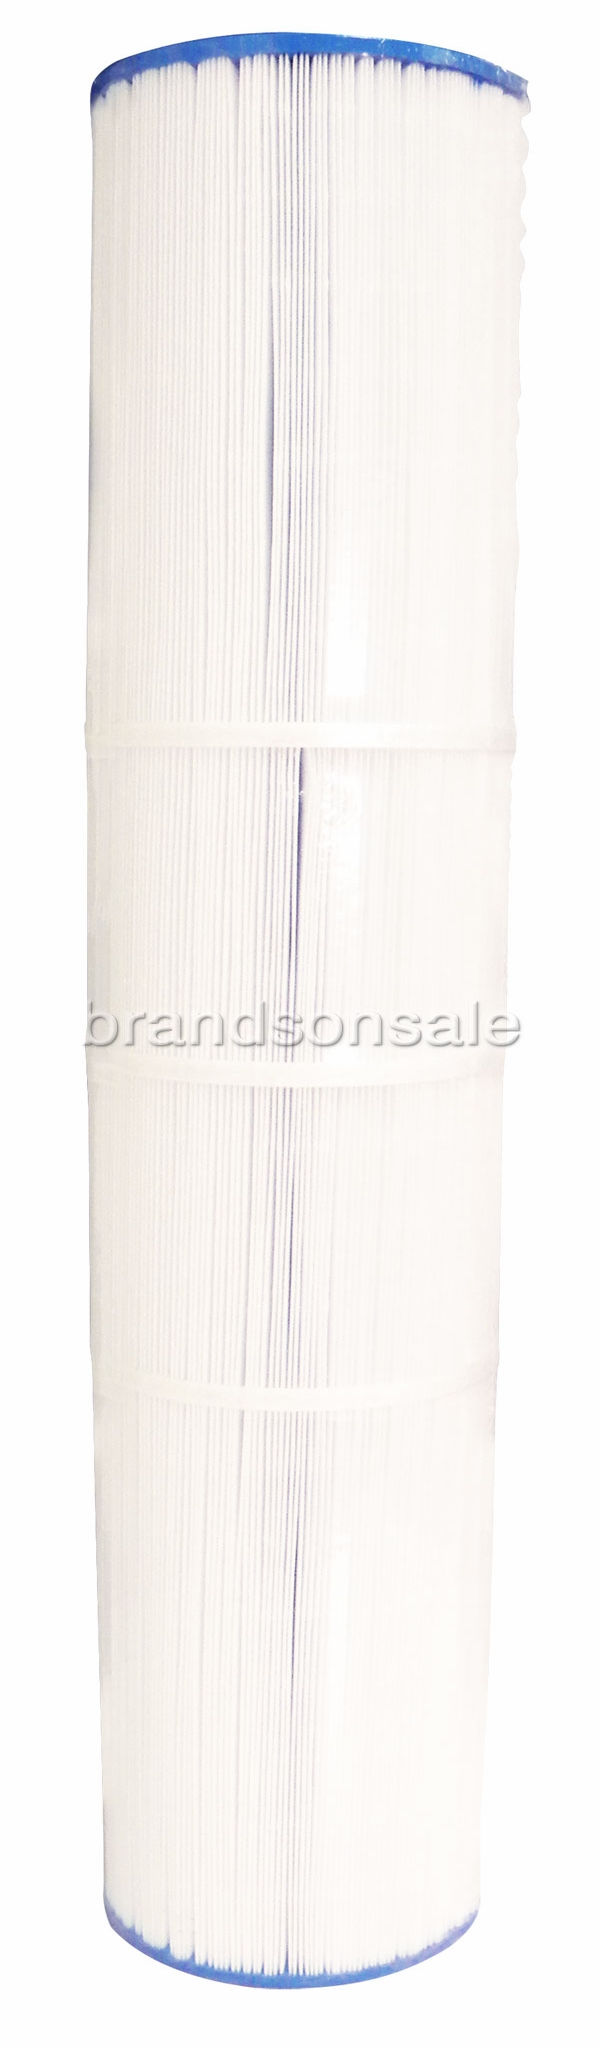 Rainbow Dynamic 75 Pool Filter Cartridge C-4975